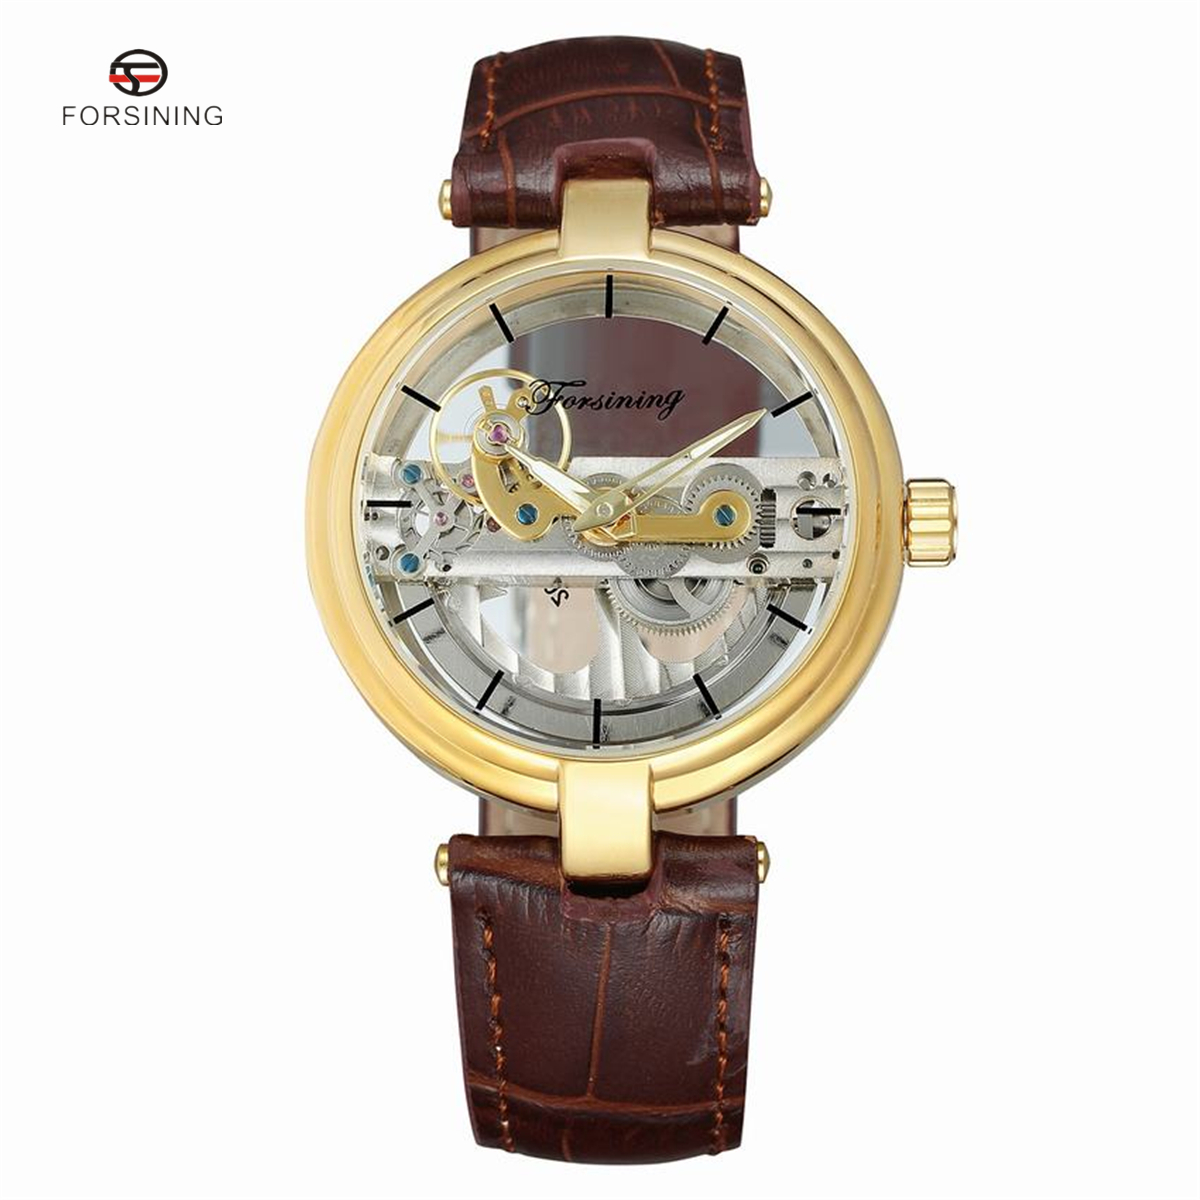 FORSINING Brand Transparent Uhr Men Automatic Mechanical Watches Casual Male Sport Hollow Leather Strap Wristwatch подвесная люстра lumion otesso 3409 5a